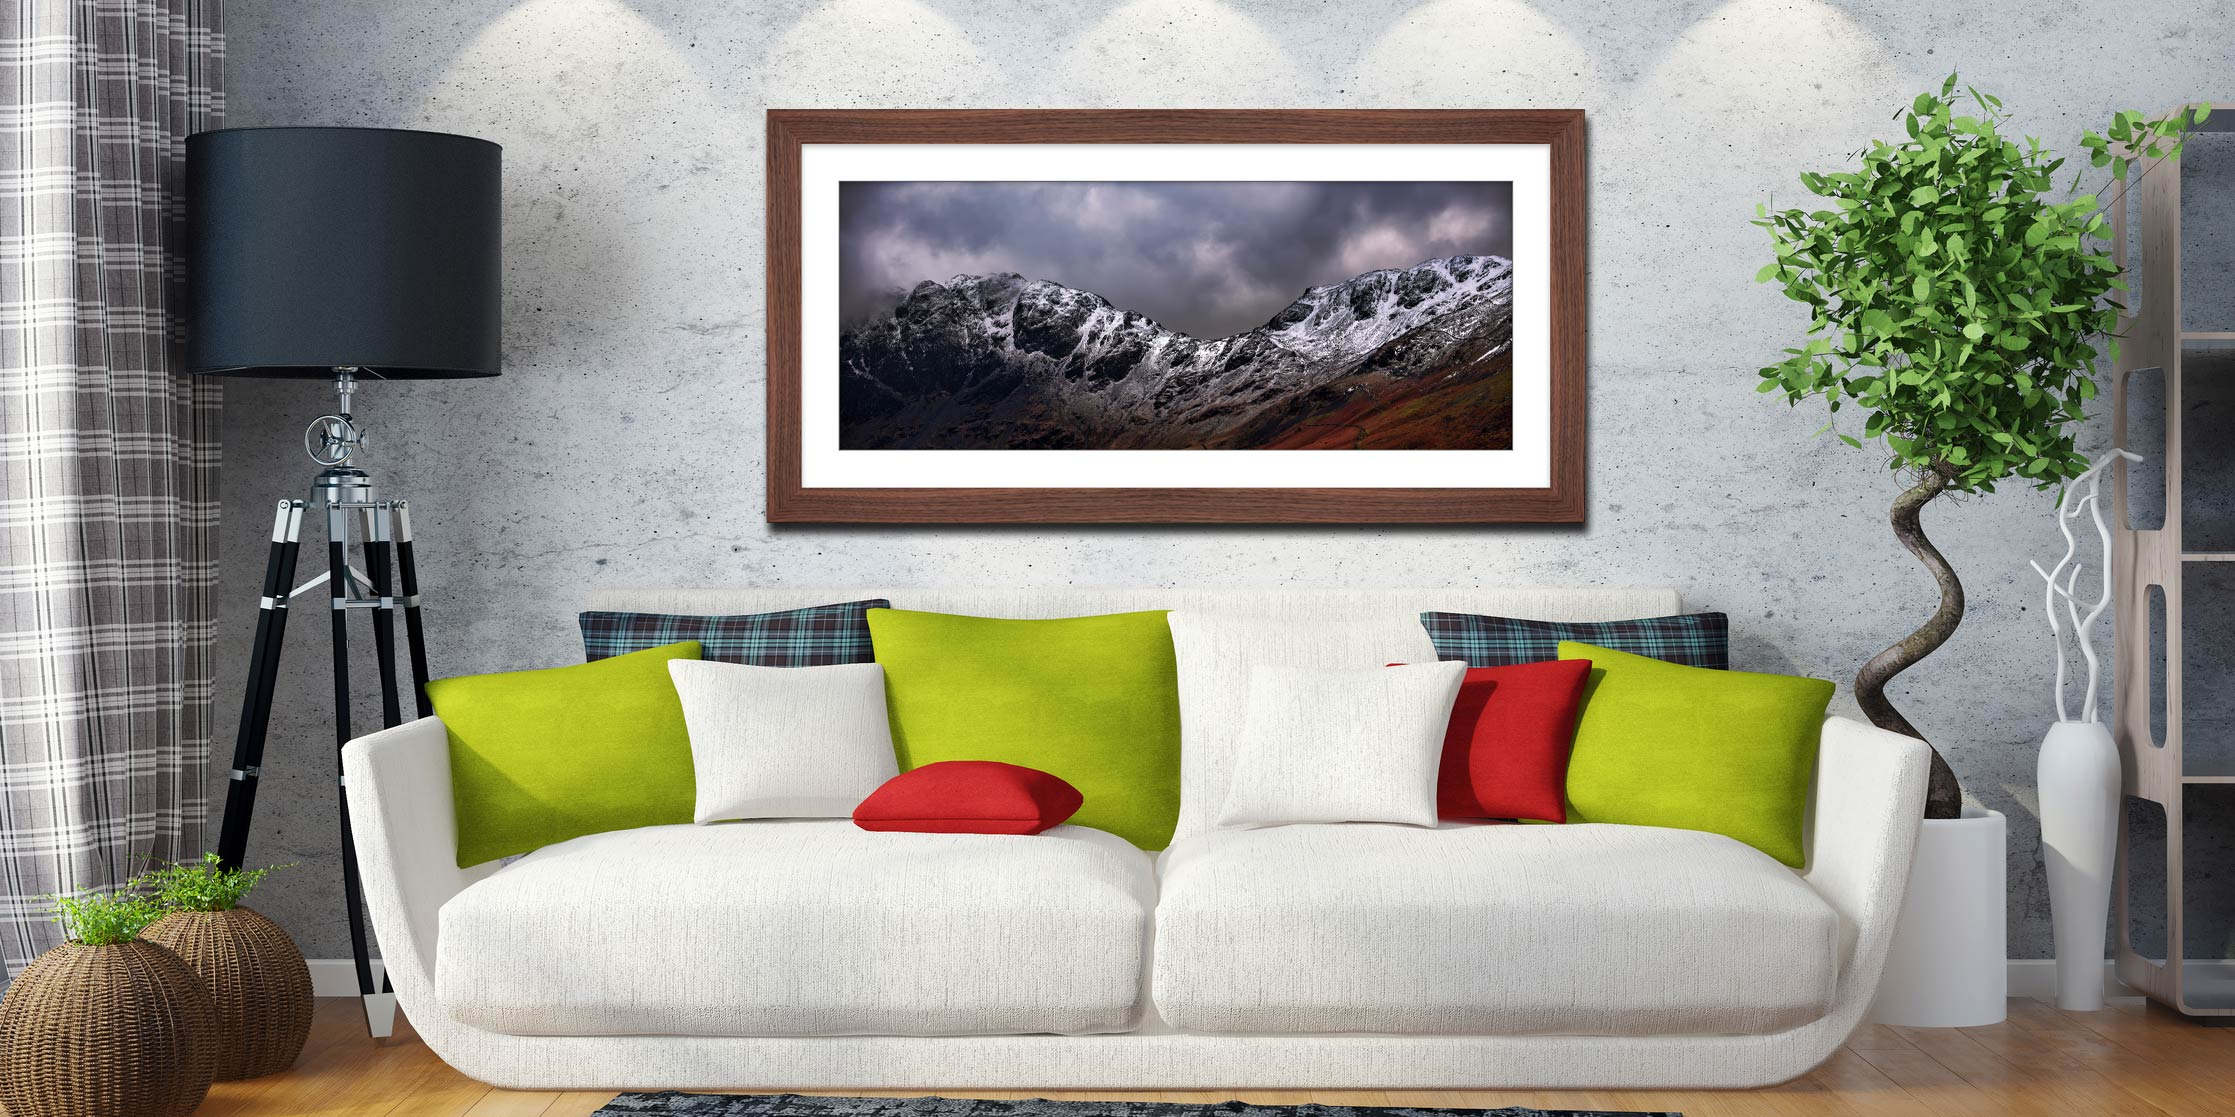 Hay Stacks and Scarth Gap Winter - Framed Print with Mount on Wall